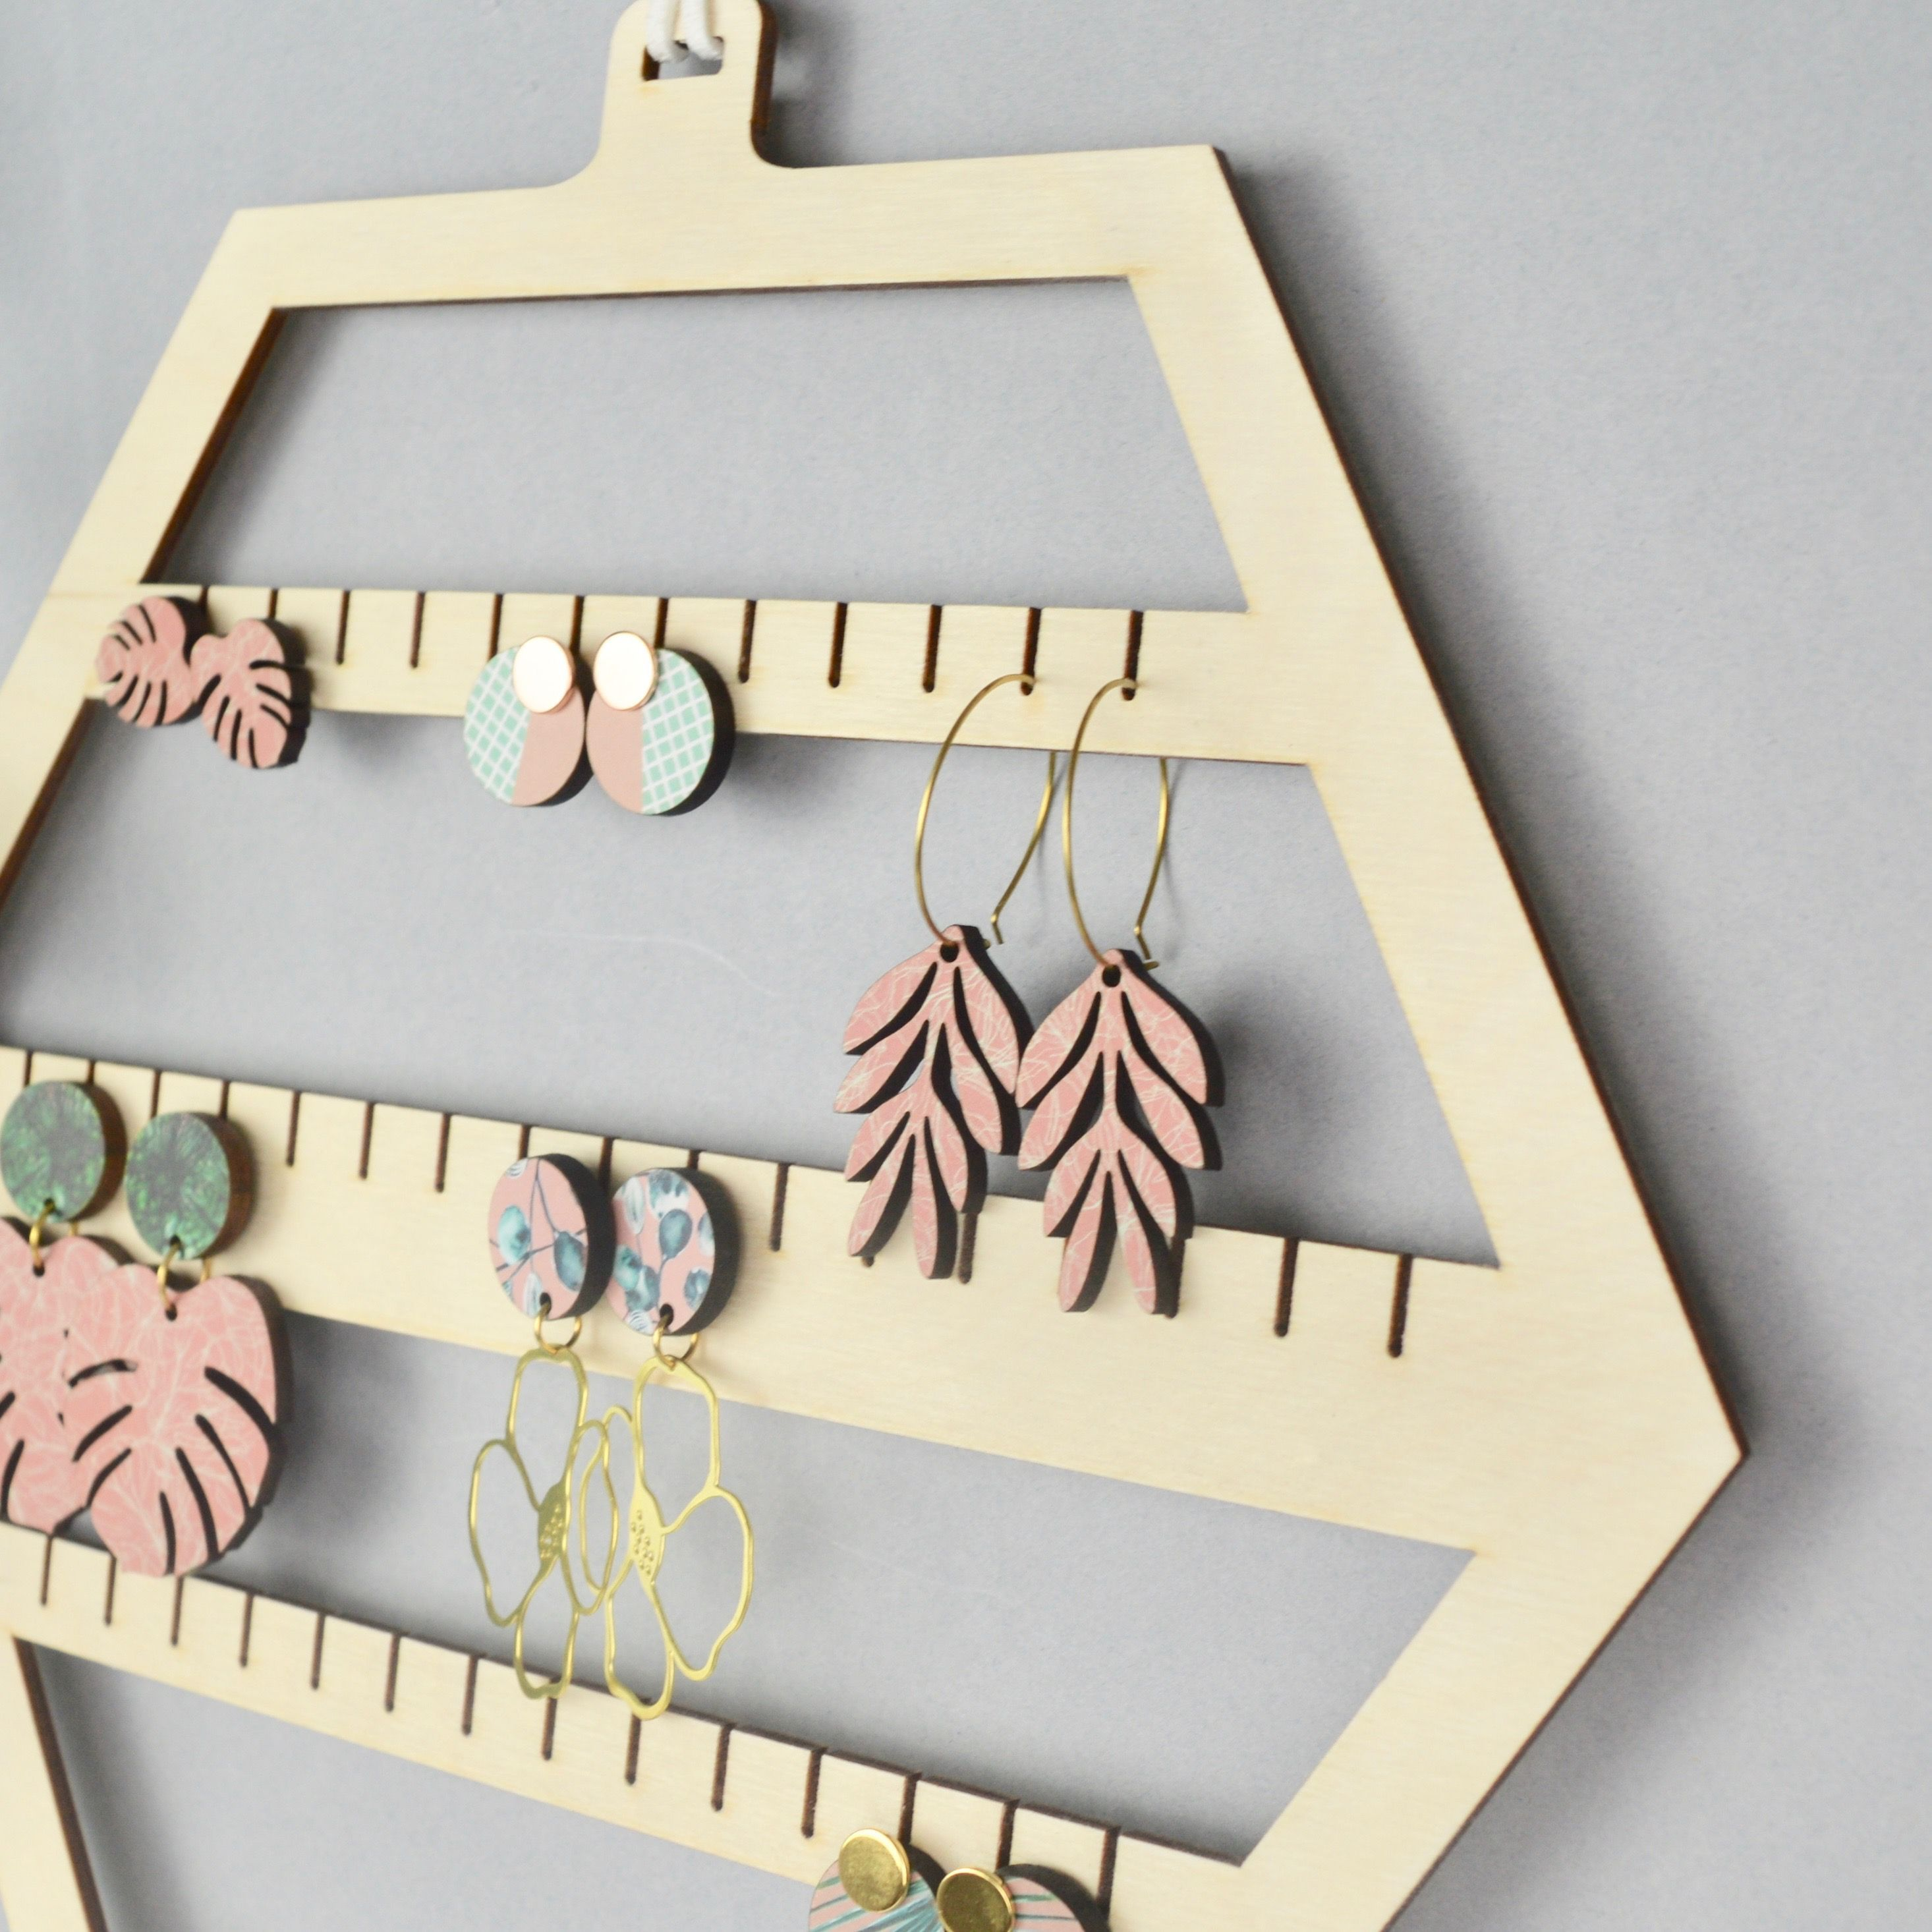 Hexagon Earring Hanger By Najb Designs How To